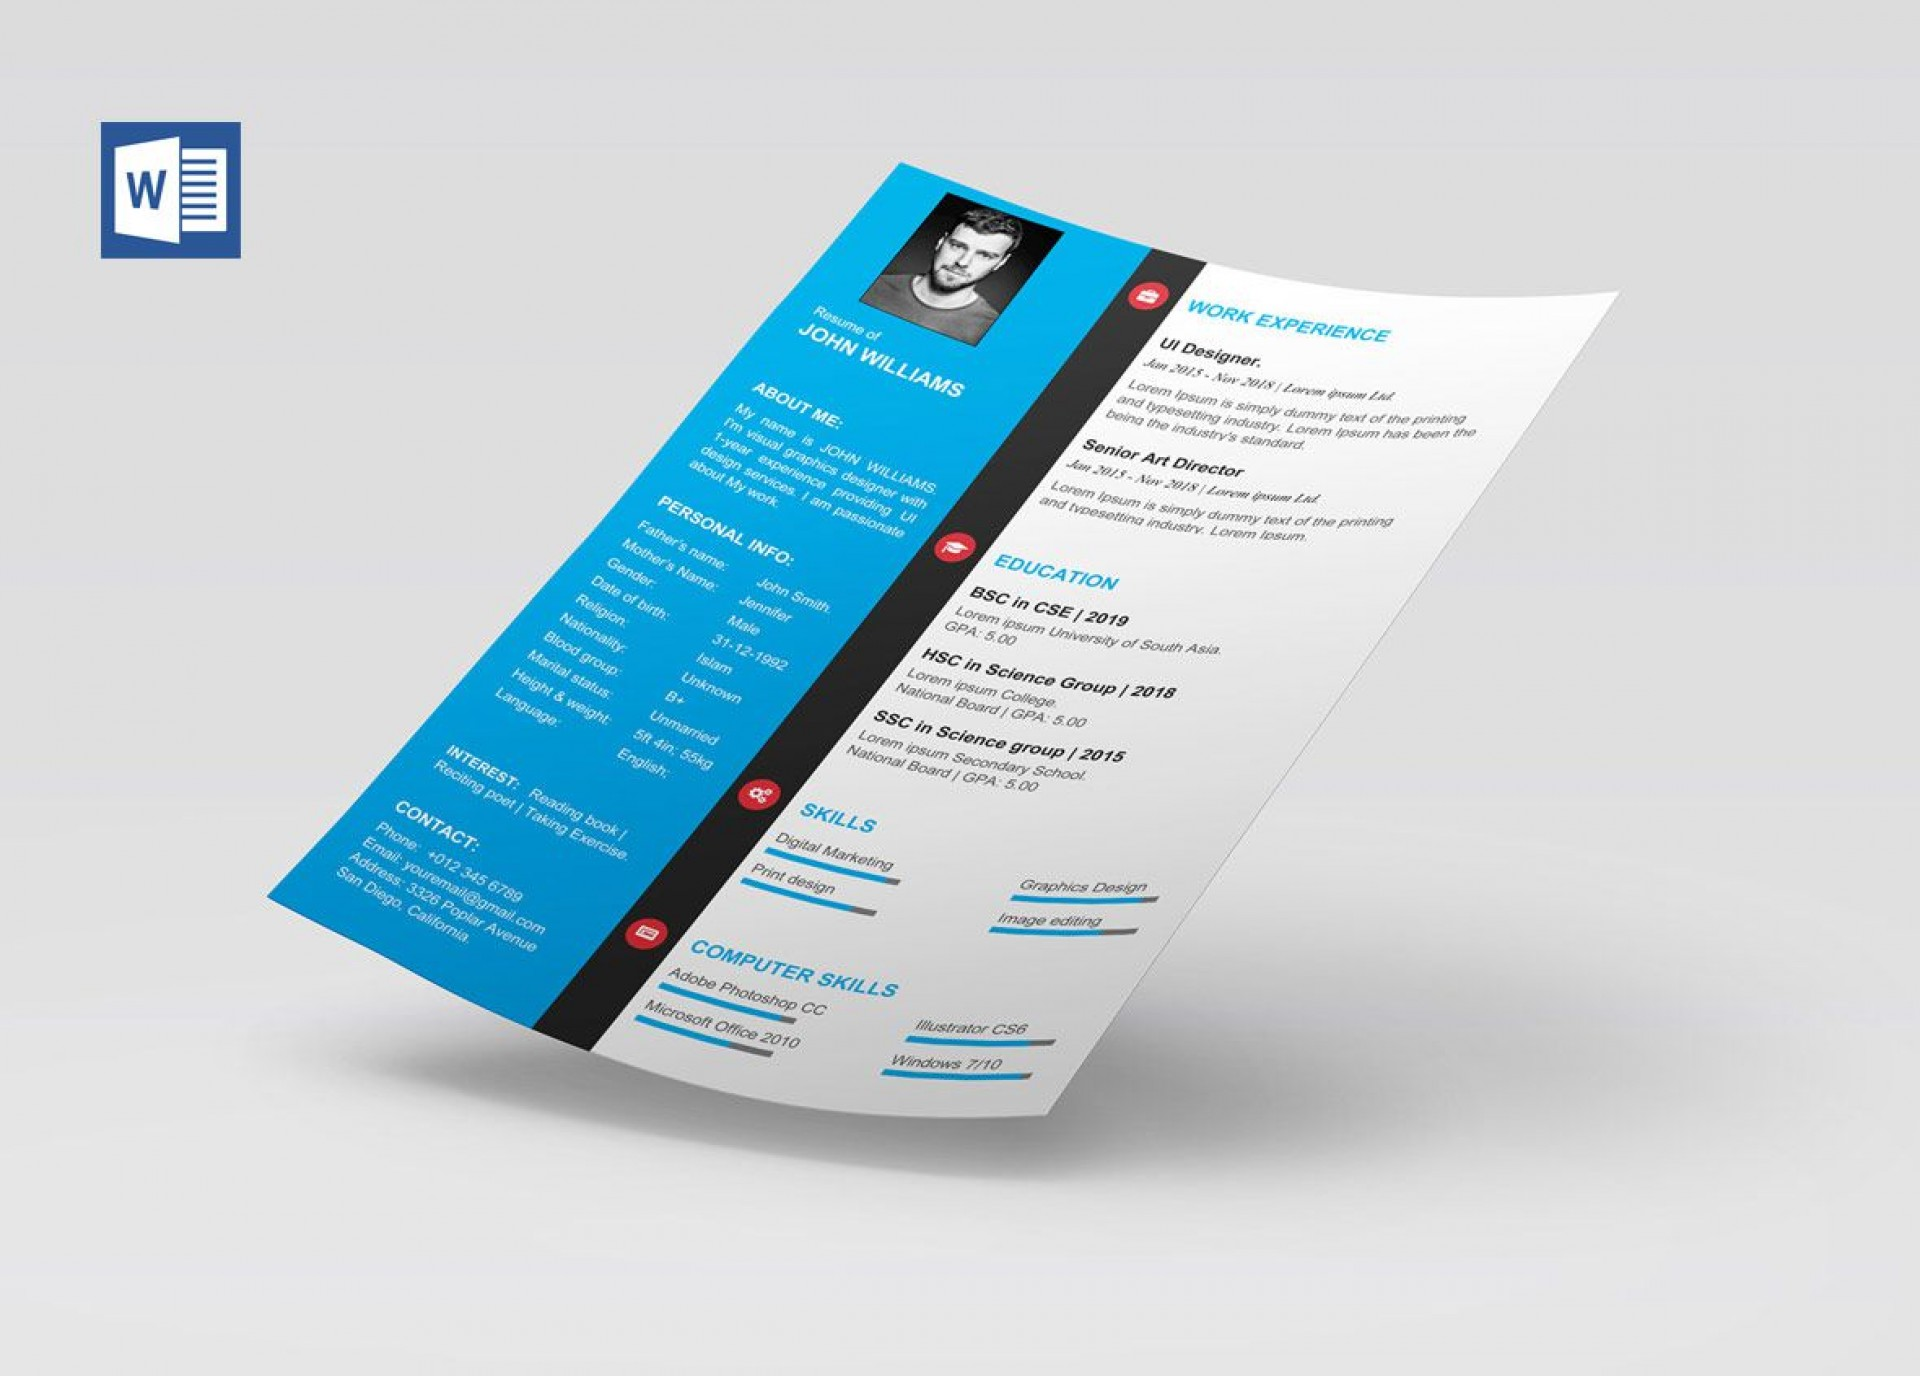 011 Formidable Word Template Free Download Image  M Design Best Cv Microsoft 20191920